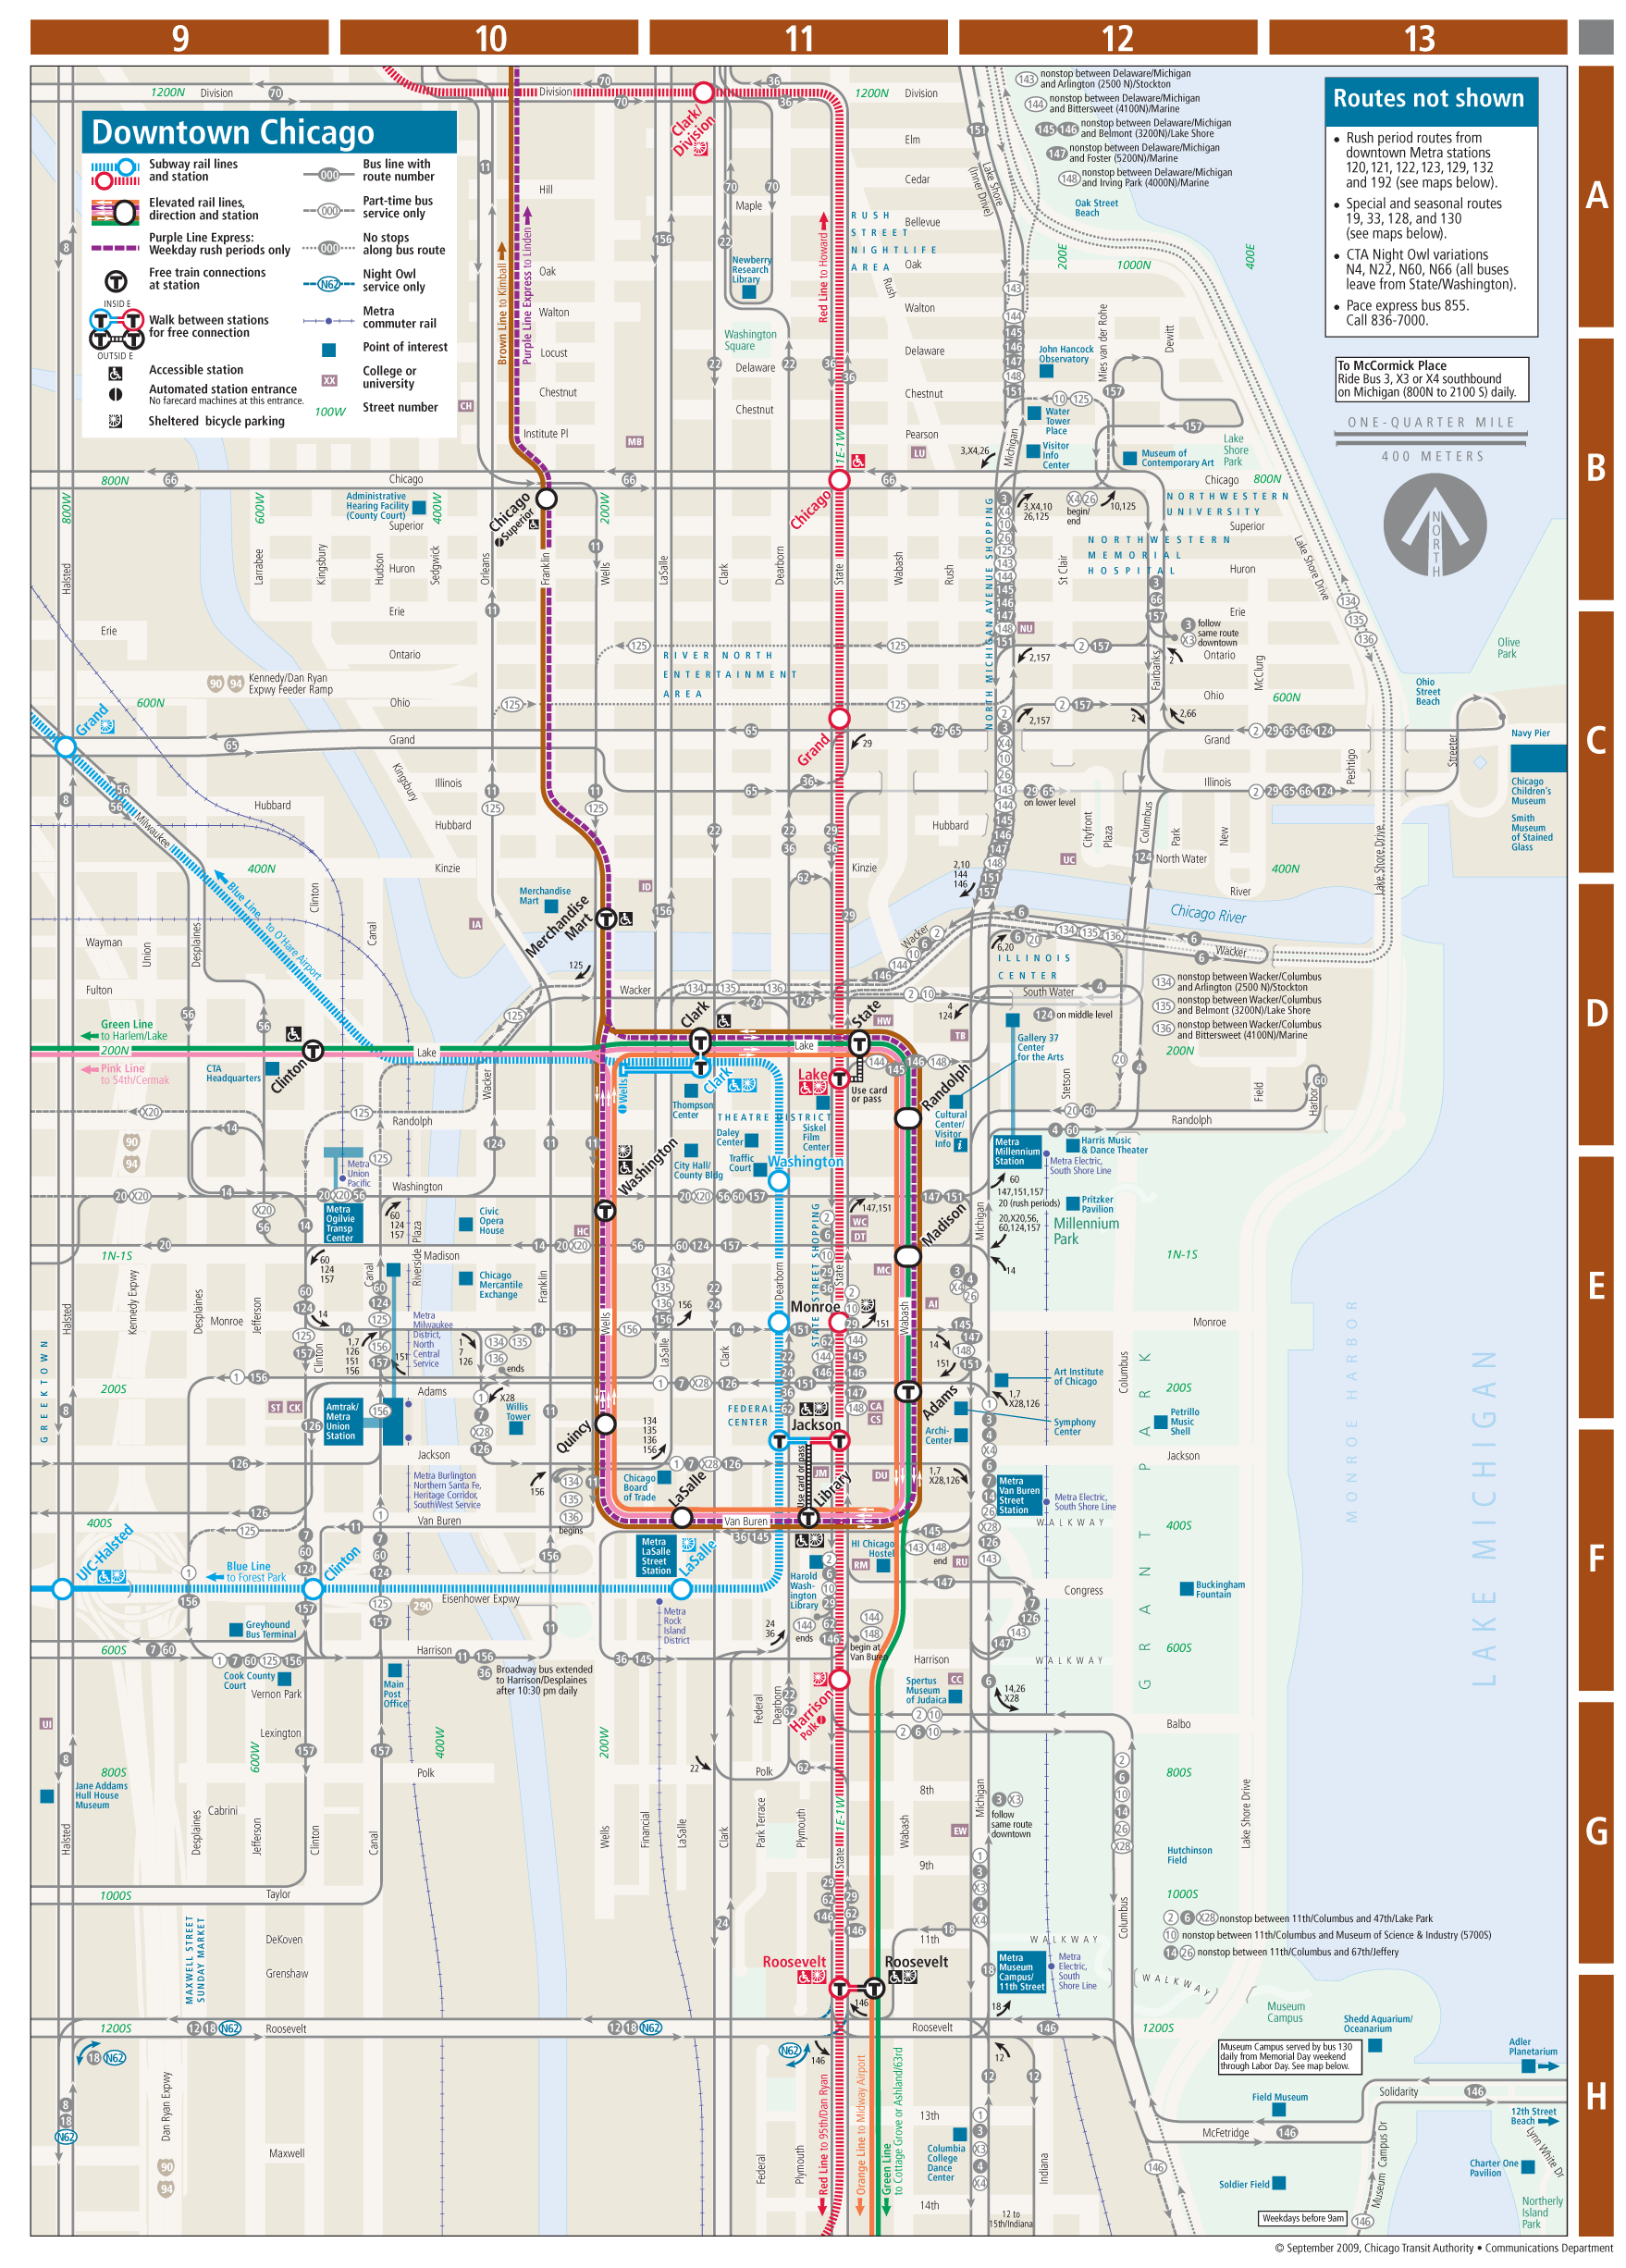 Chicago Subway Map Picture.Chicago Downtown Metro System Map Mapsof Net